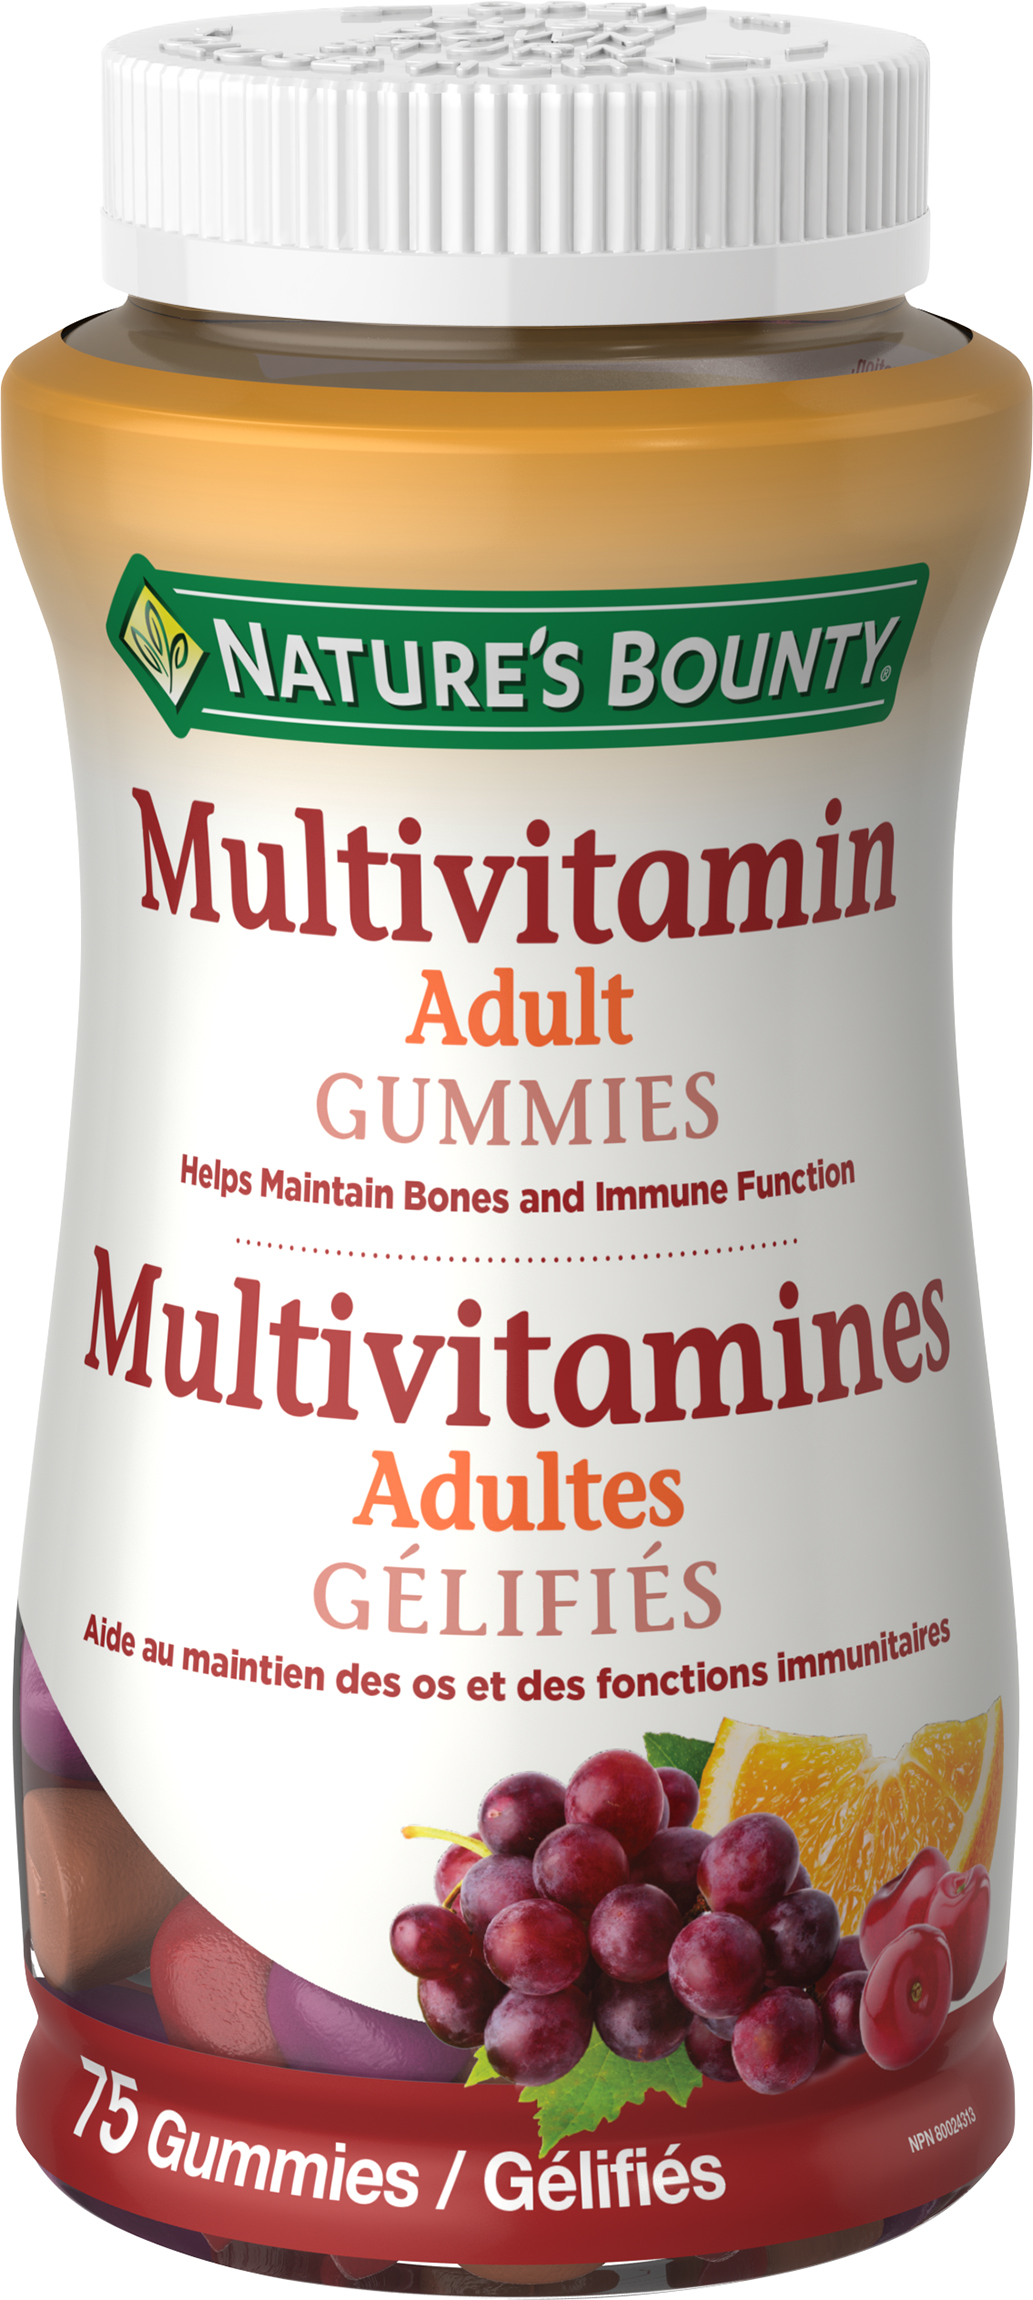 Gélifiés de Multivitamines